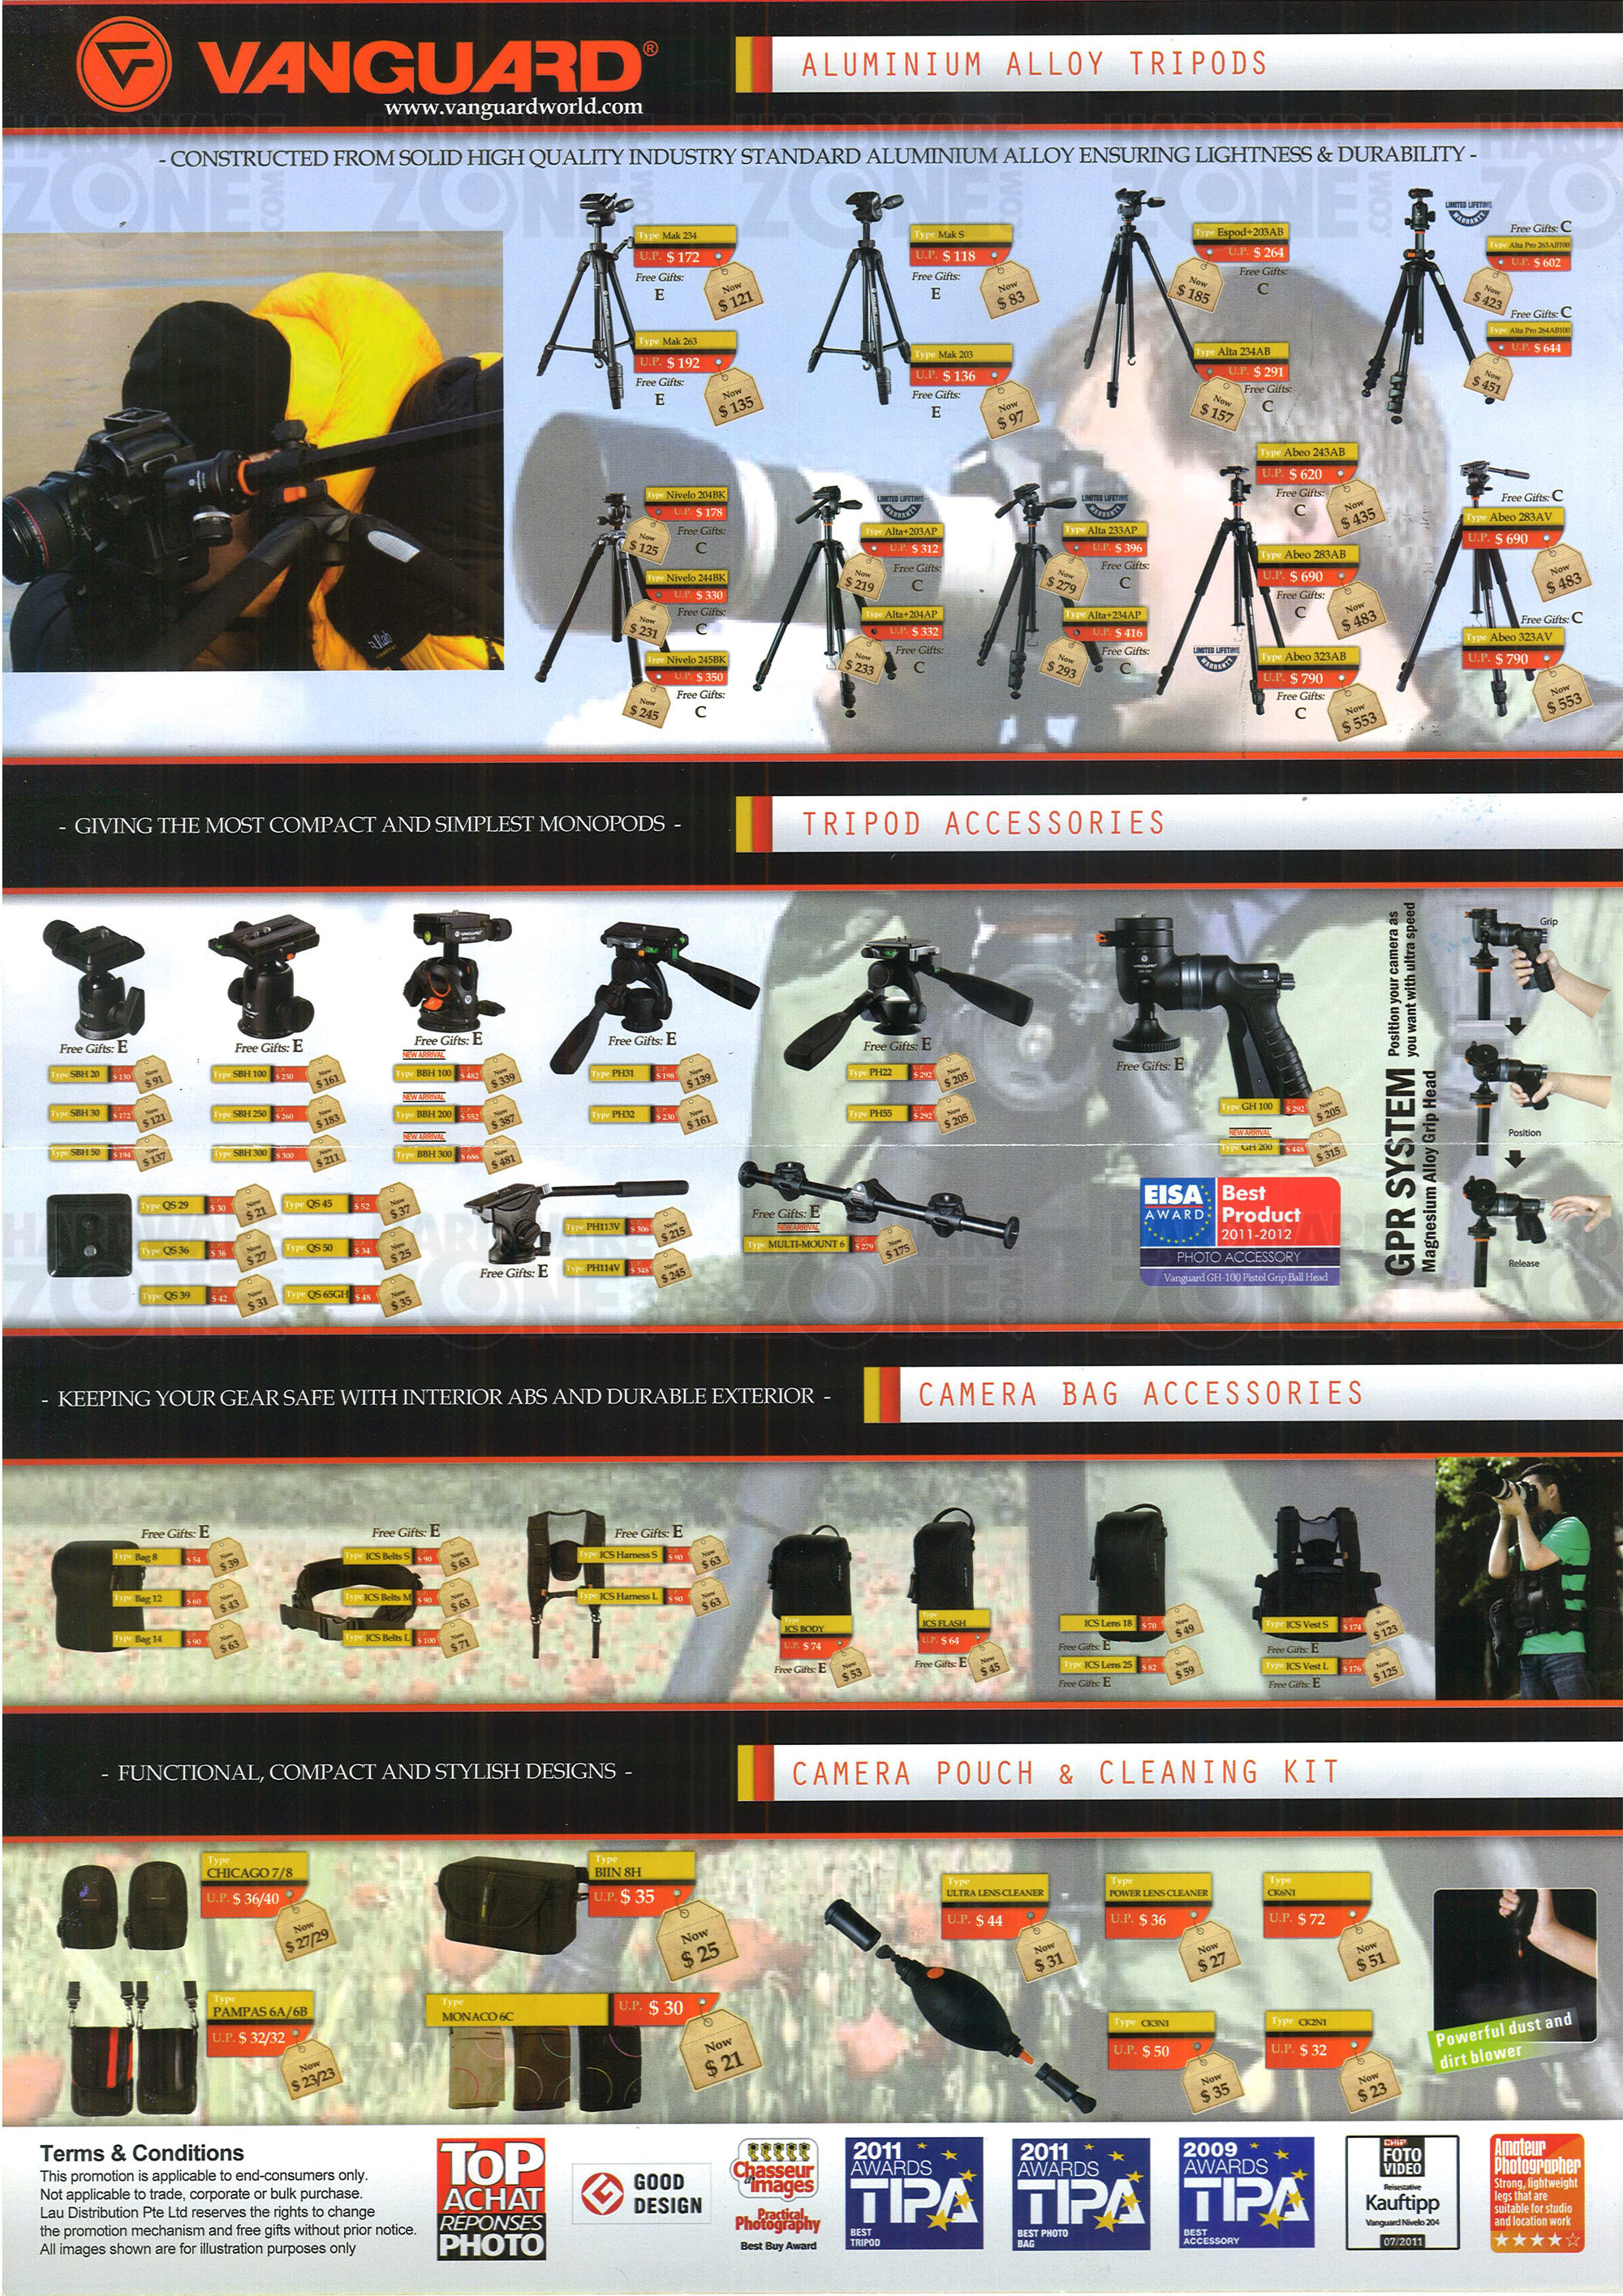 Vanguard Camera Accessories - Page 2